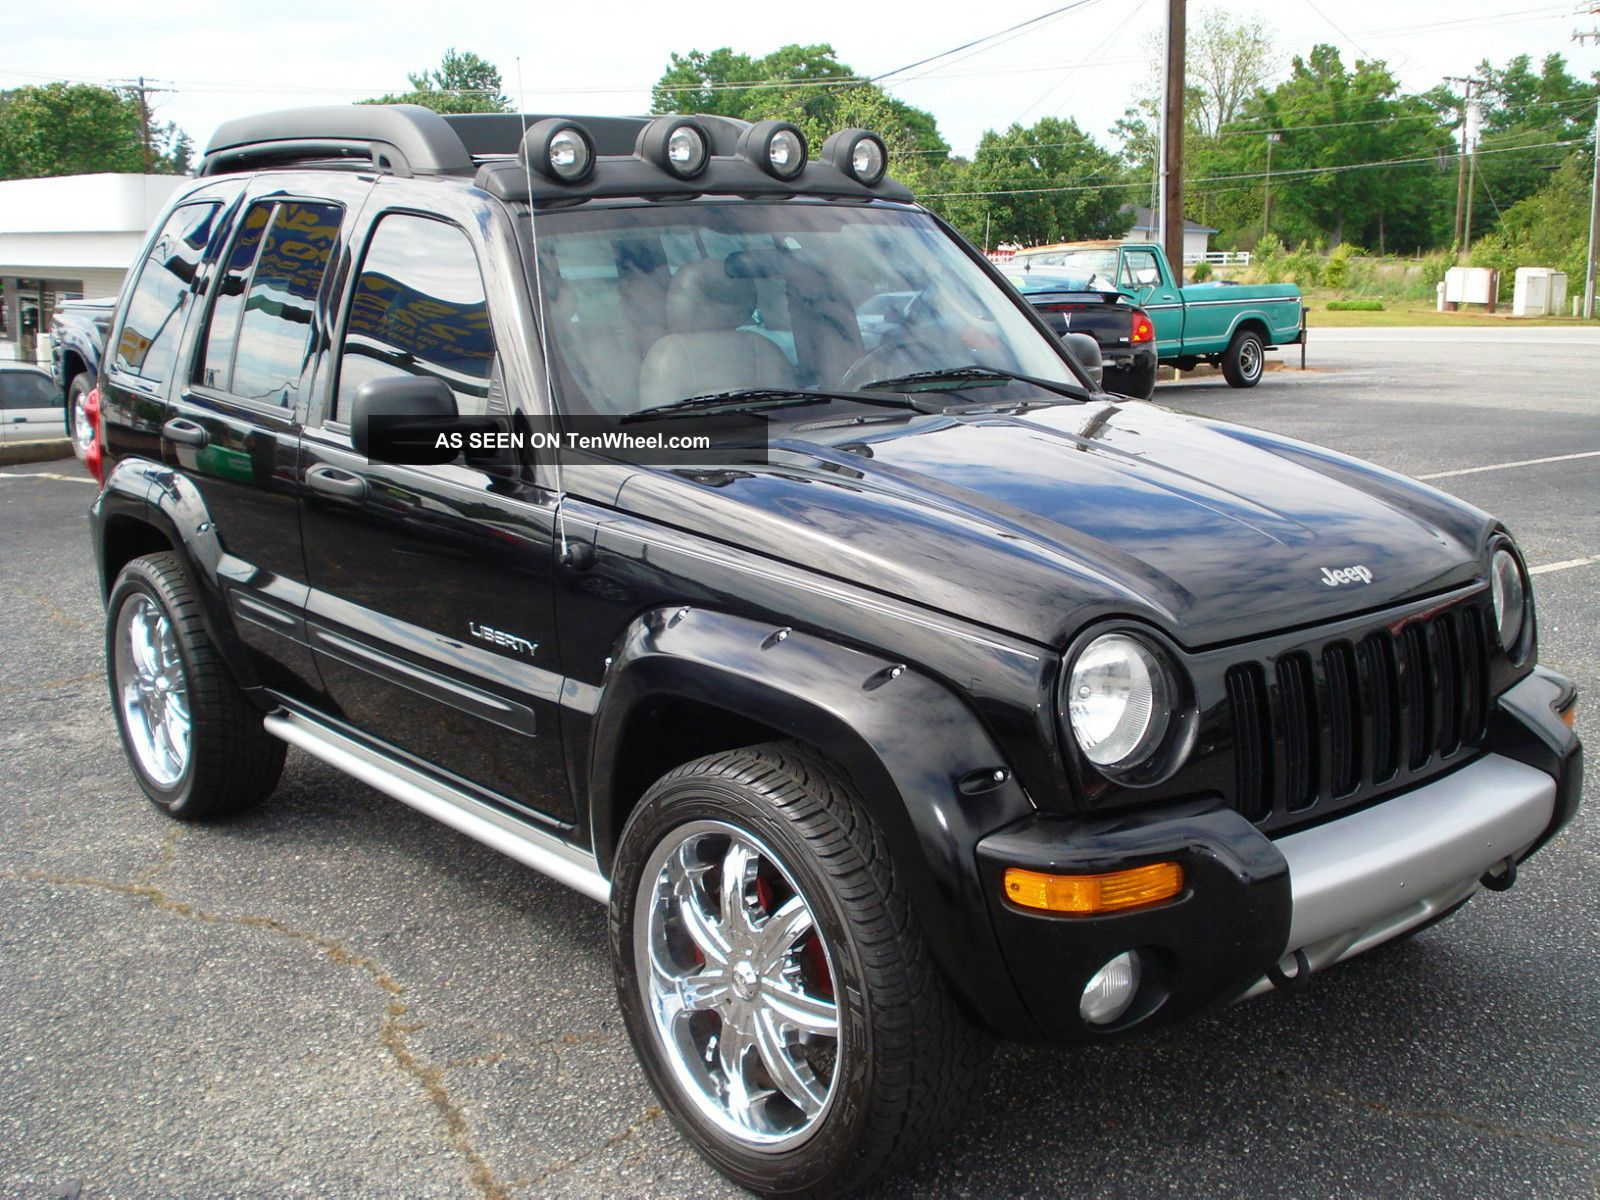 2004 Jeep Liberty Renegade Sport Utility 4 Door 3 7l